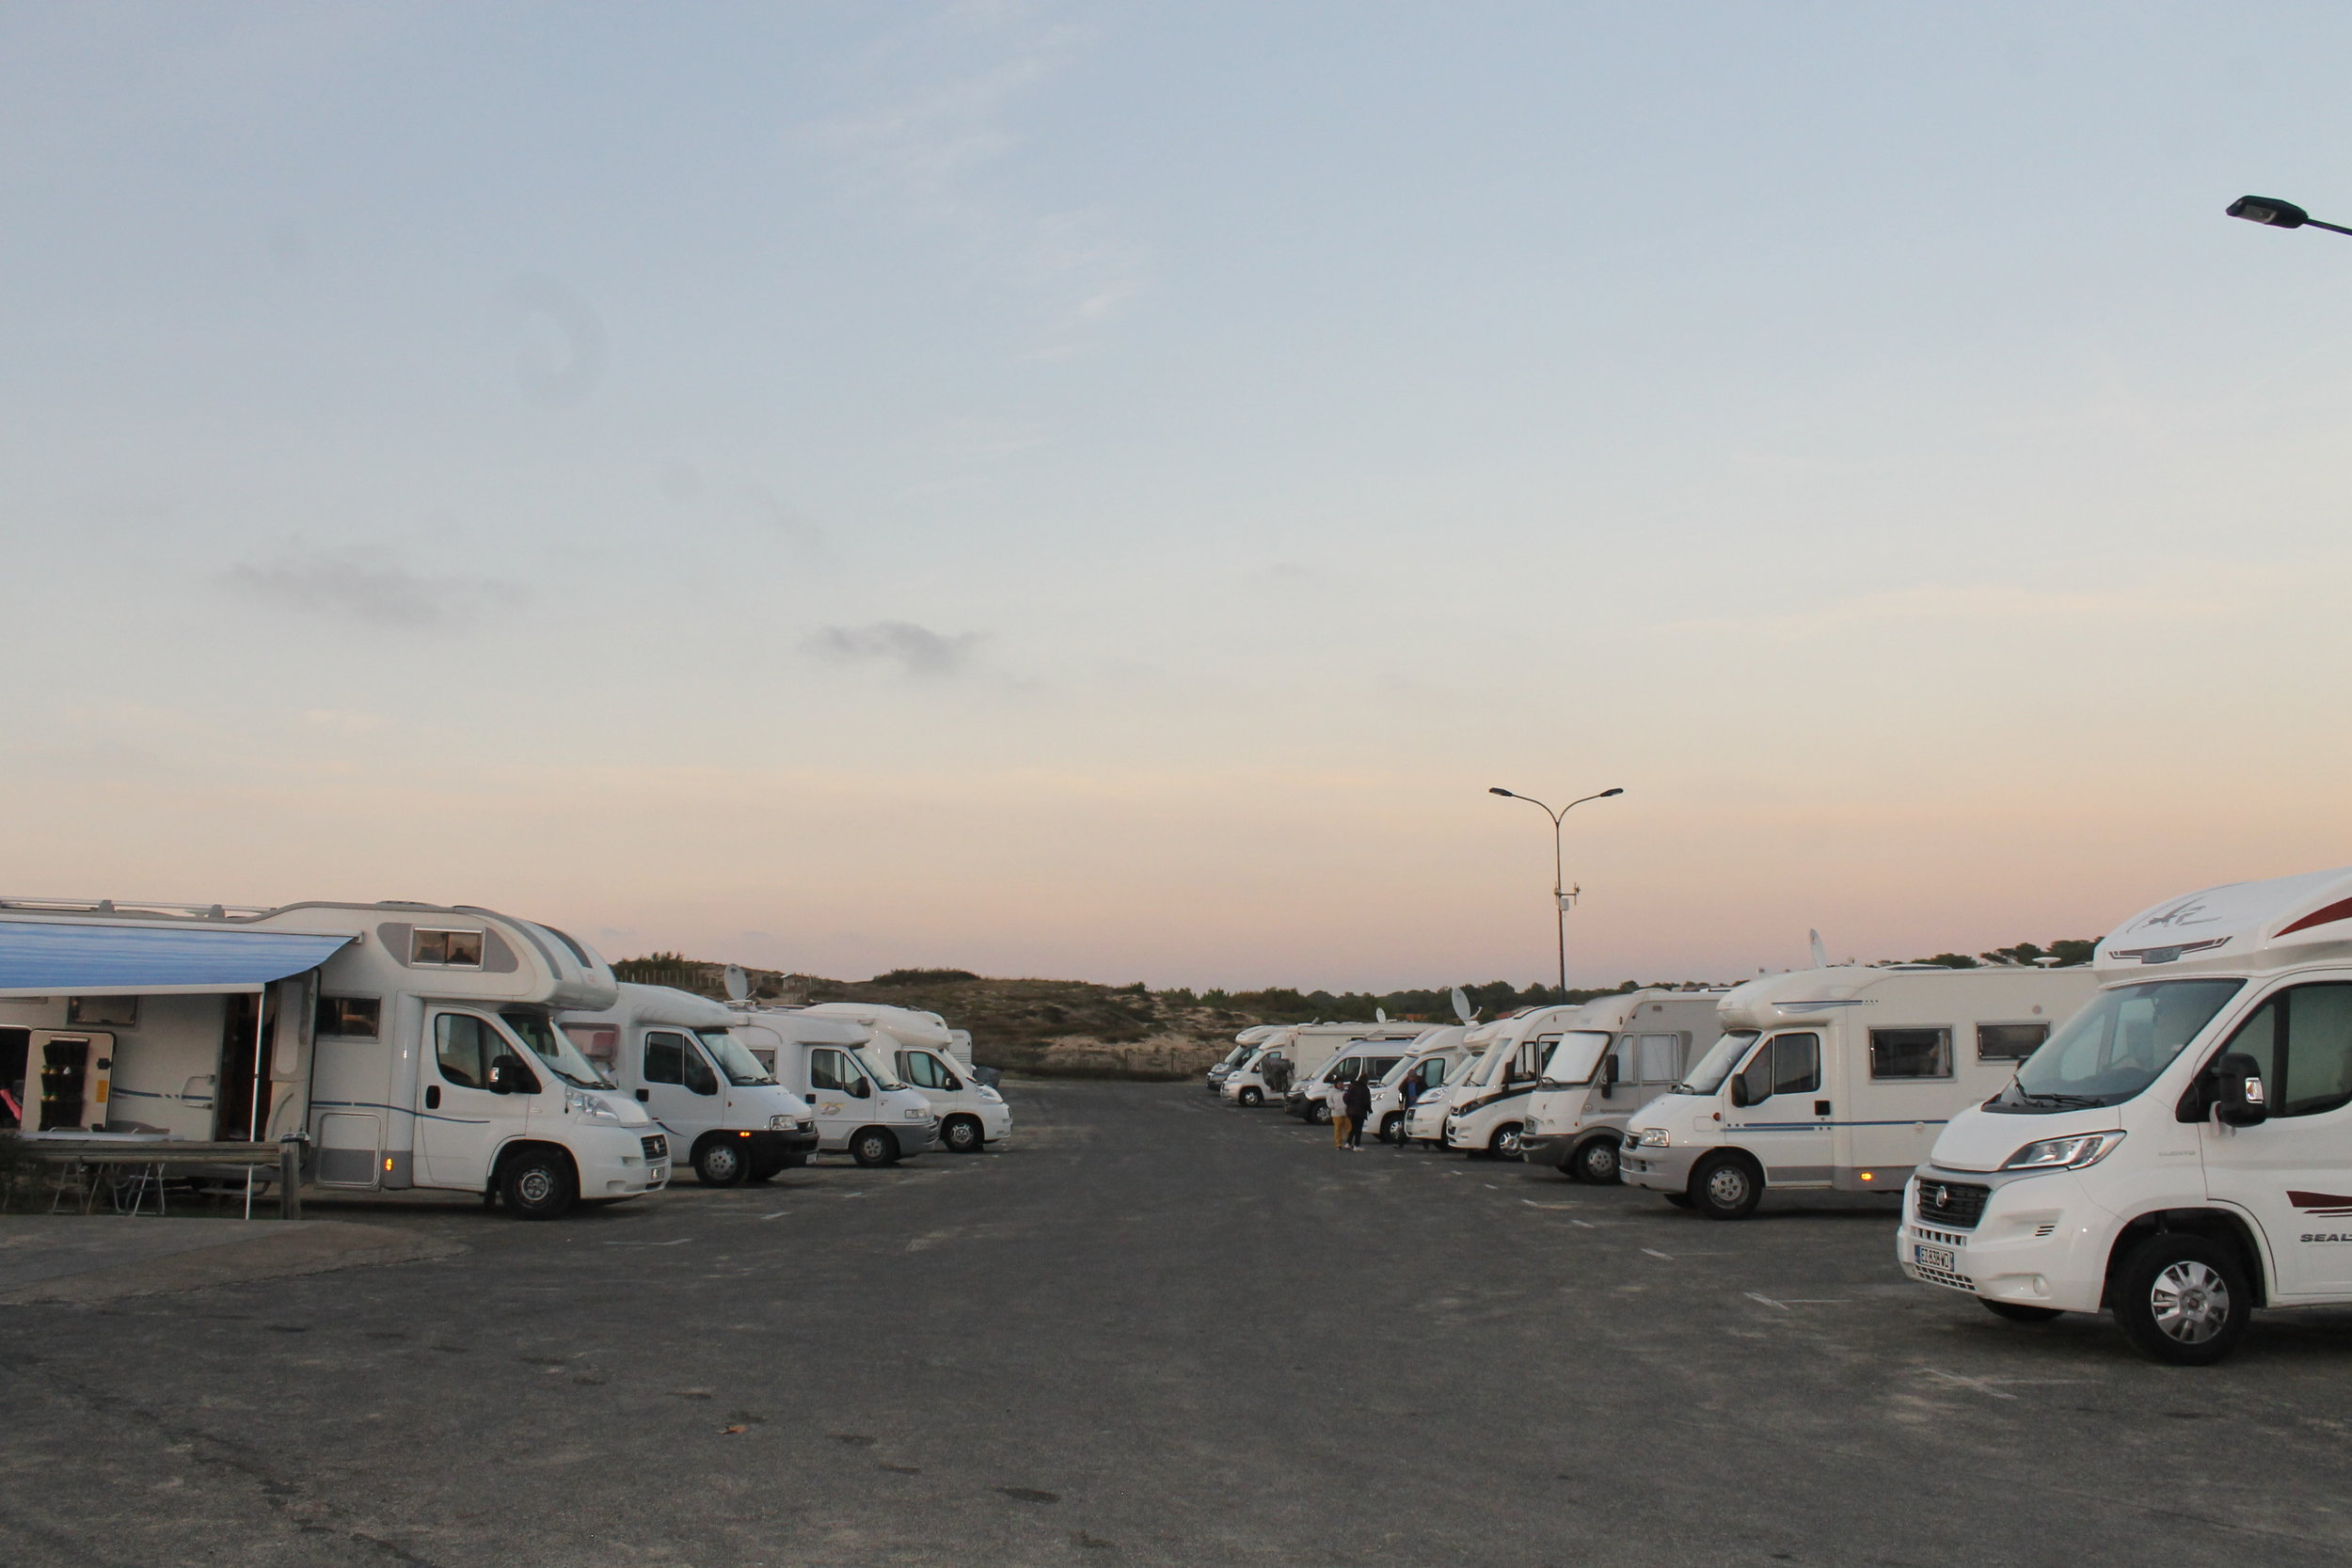 Campervan campsite in Cabreton, limited facilities but great location